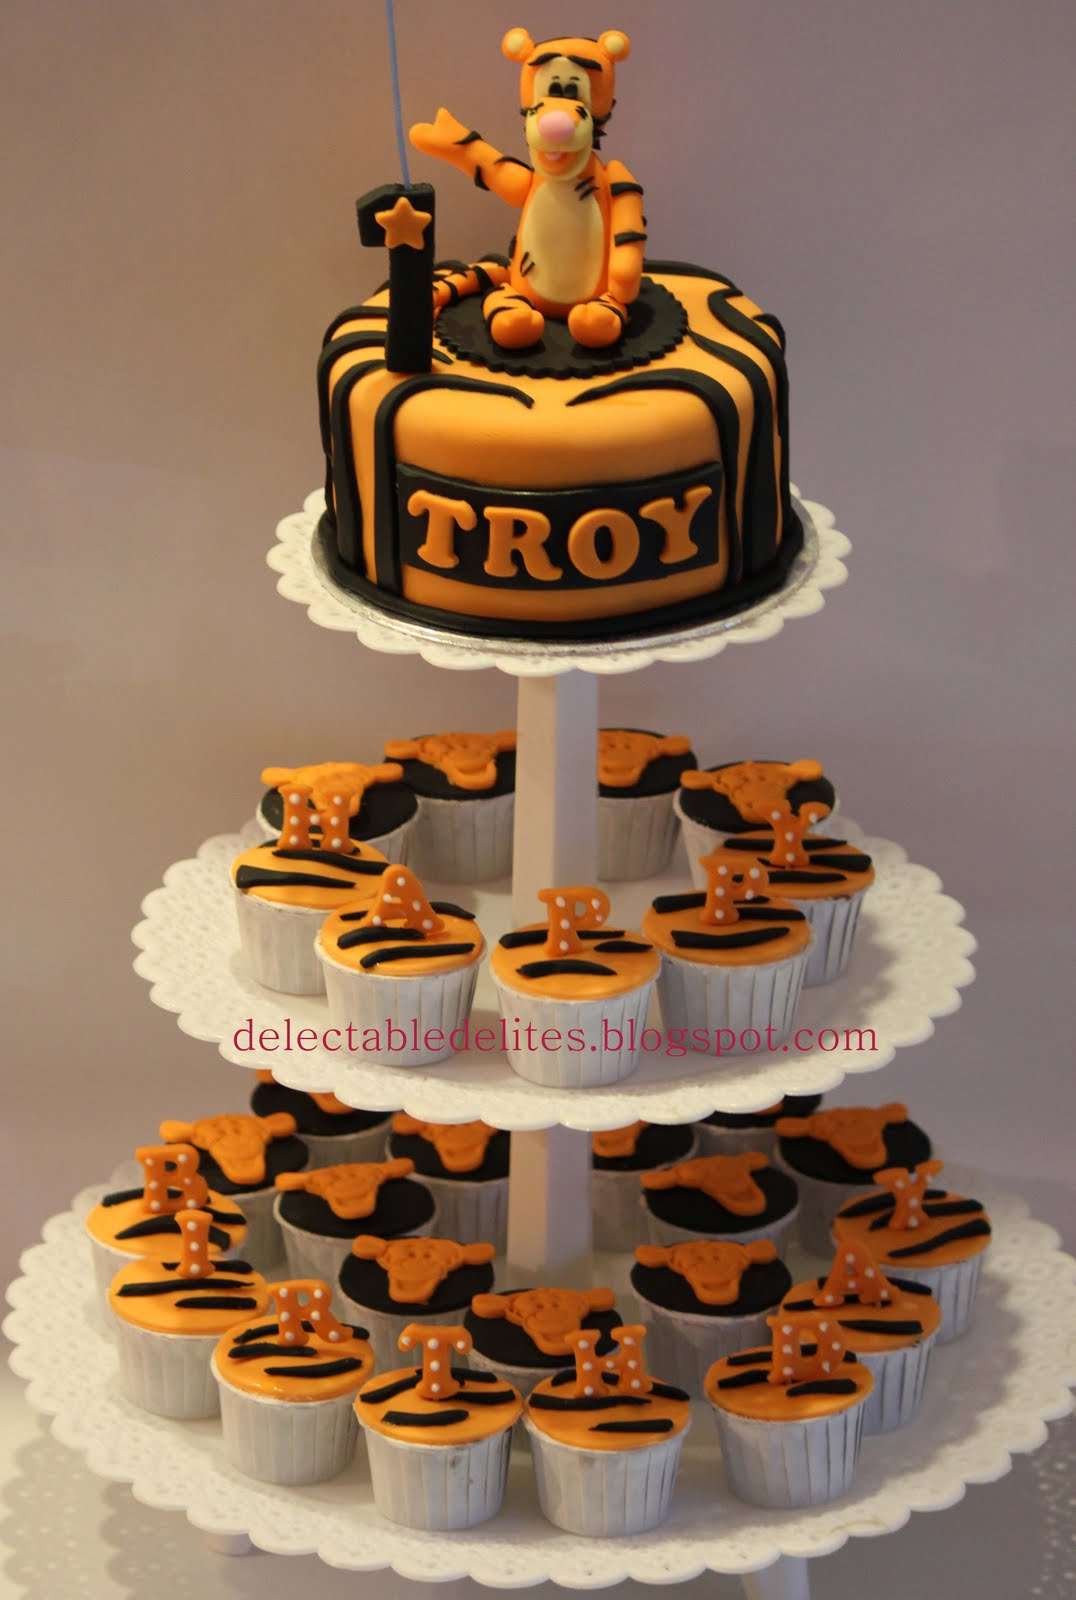 Delectable Delites Tigger Cake For Troy S 1st Birthday